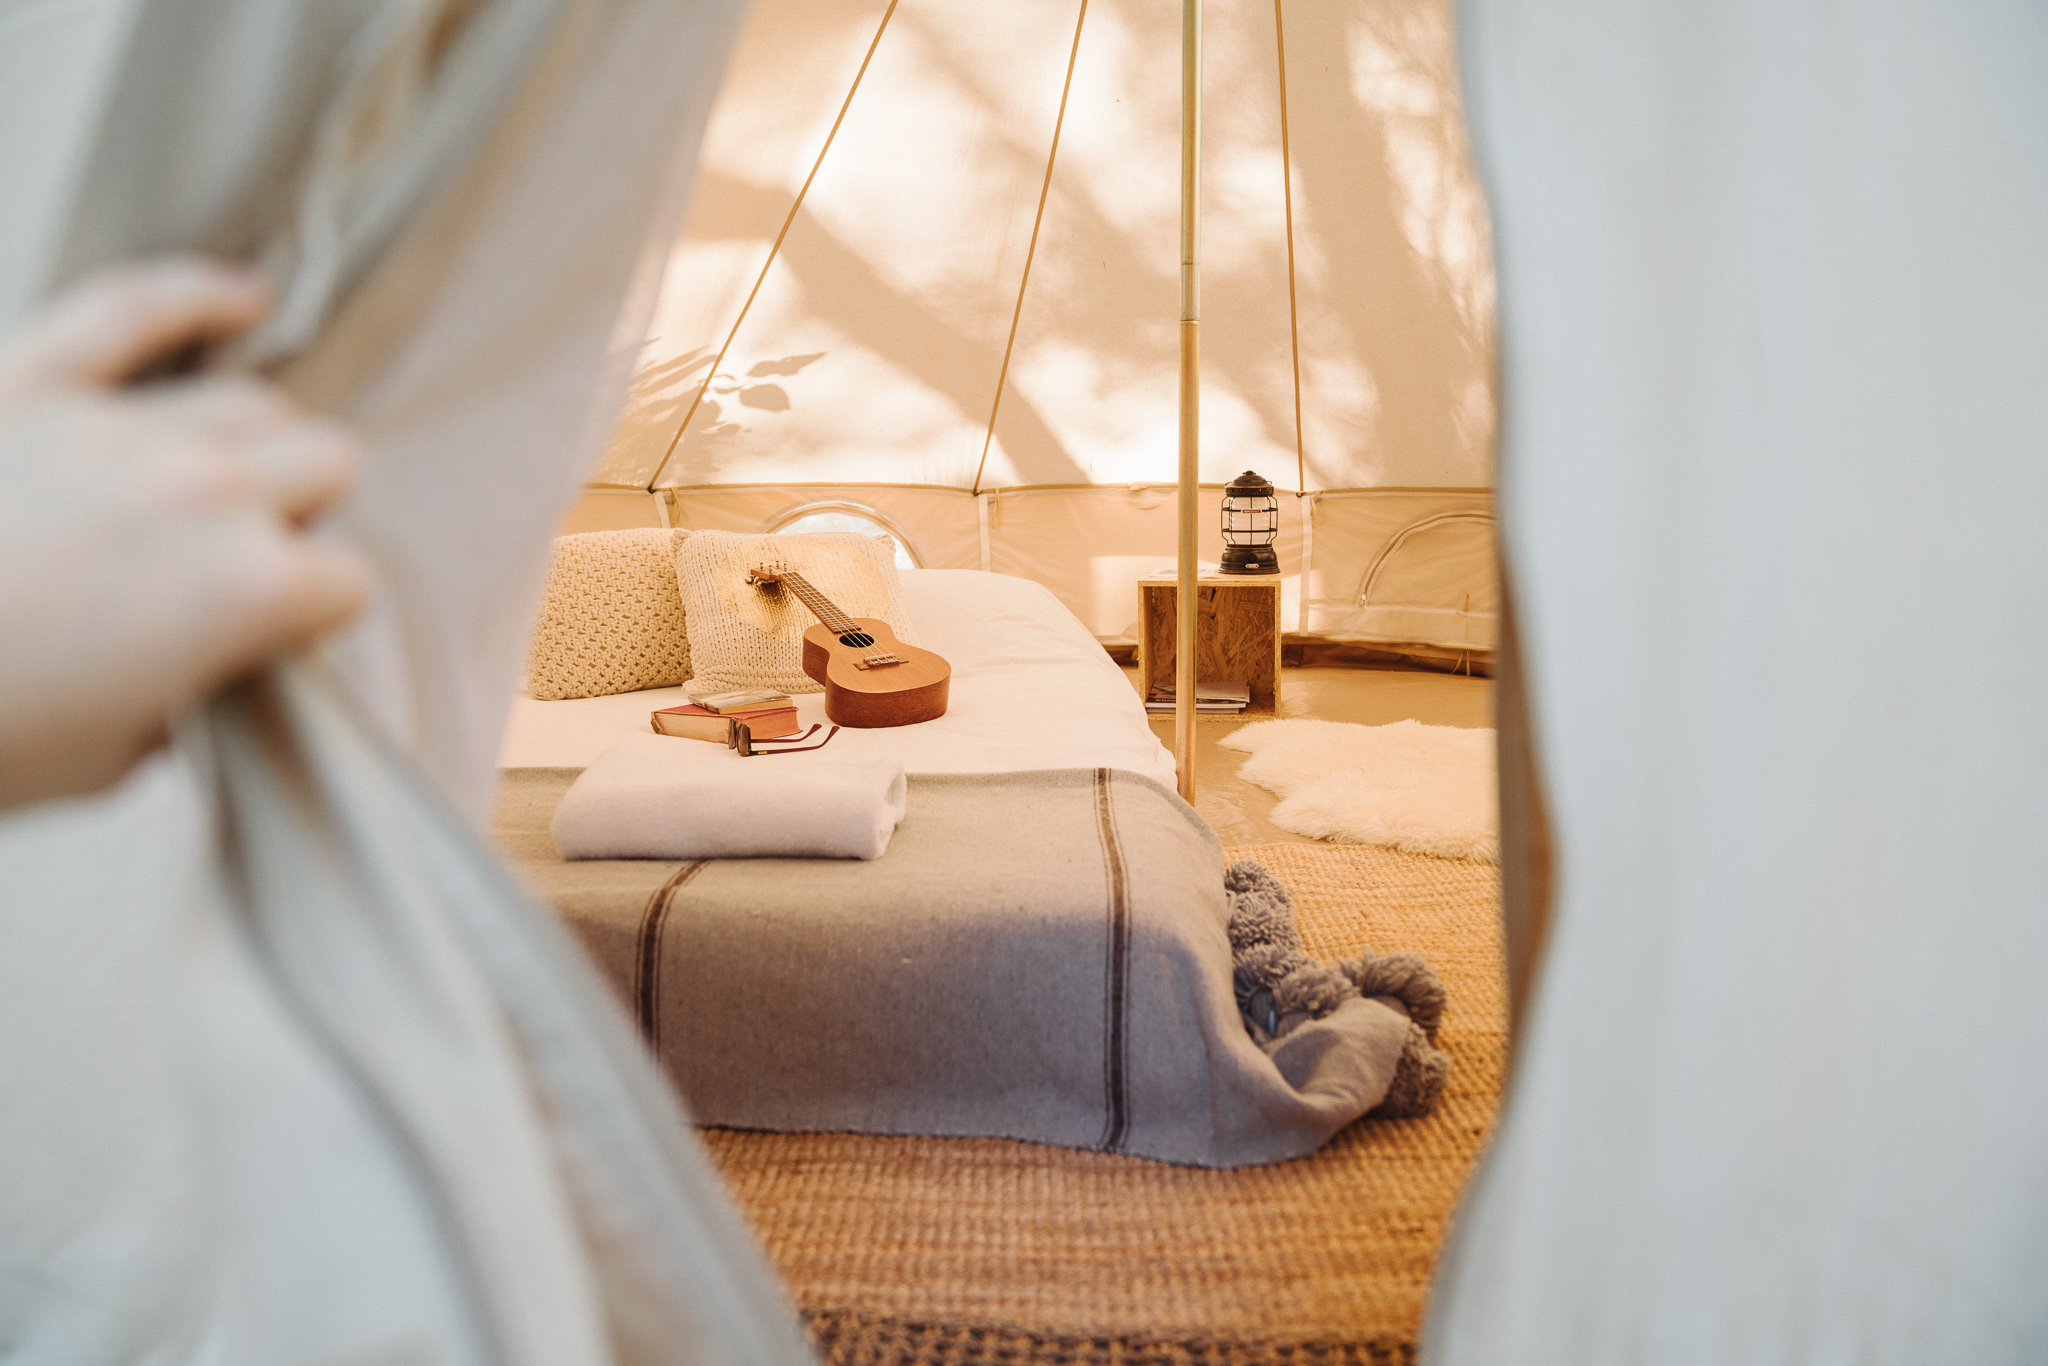 - TENT SIZE